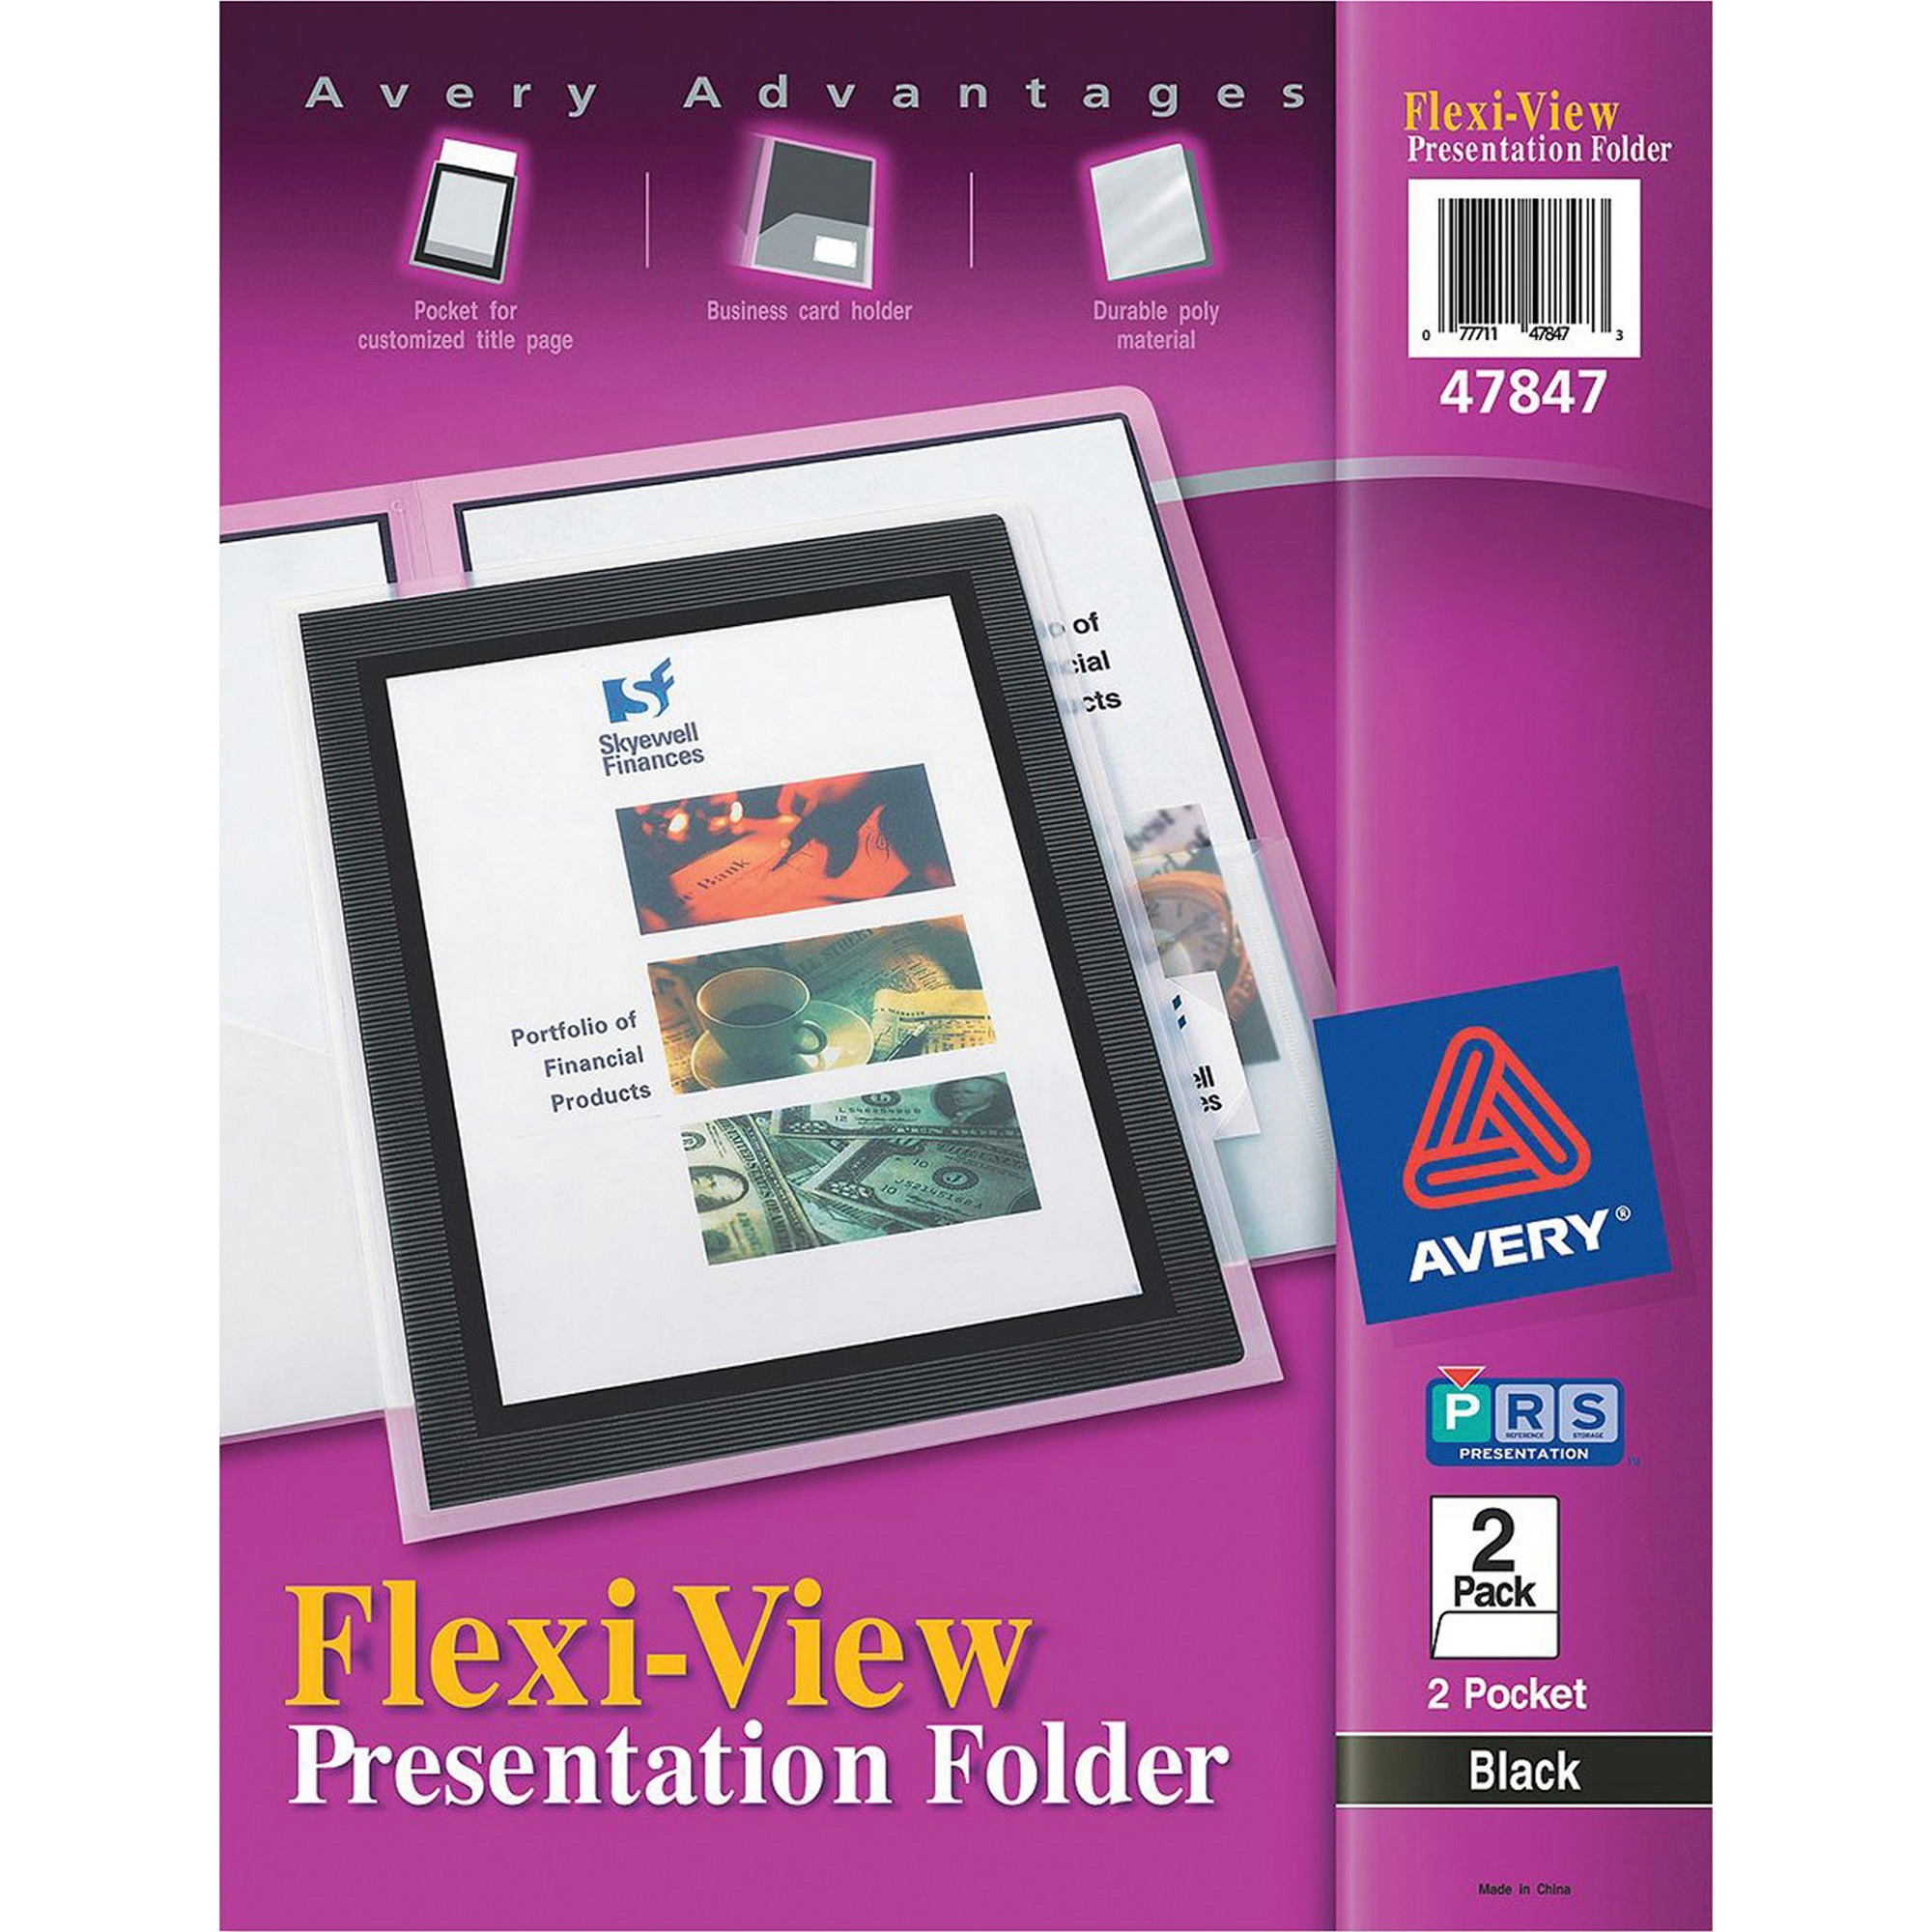 Avery Flexi-View Two-Pocket Polypropylene Folder, Translucent Black, 2 Pack by Avery